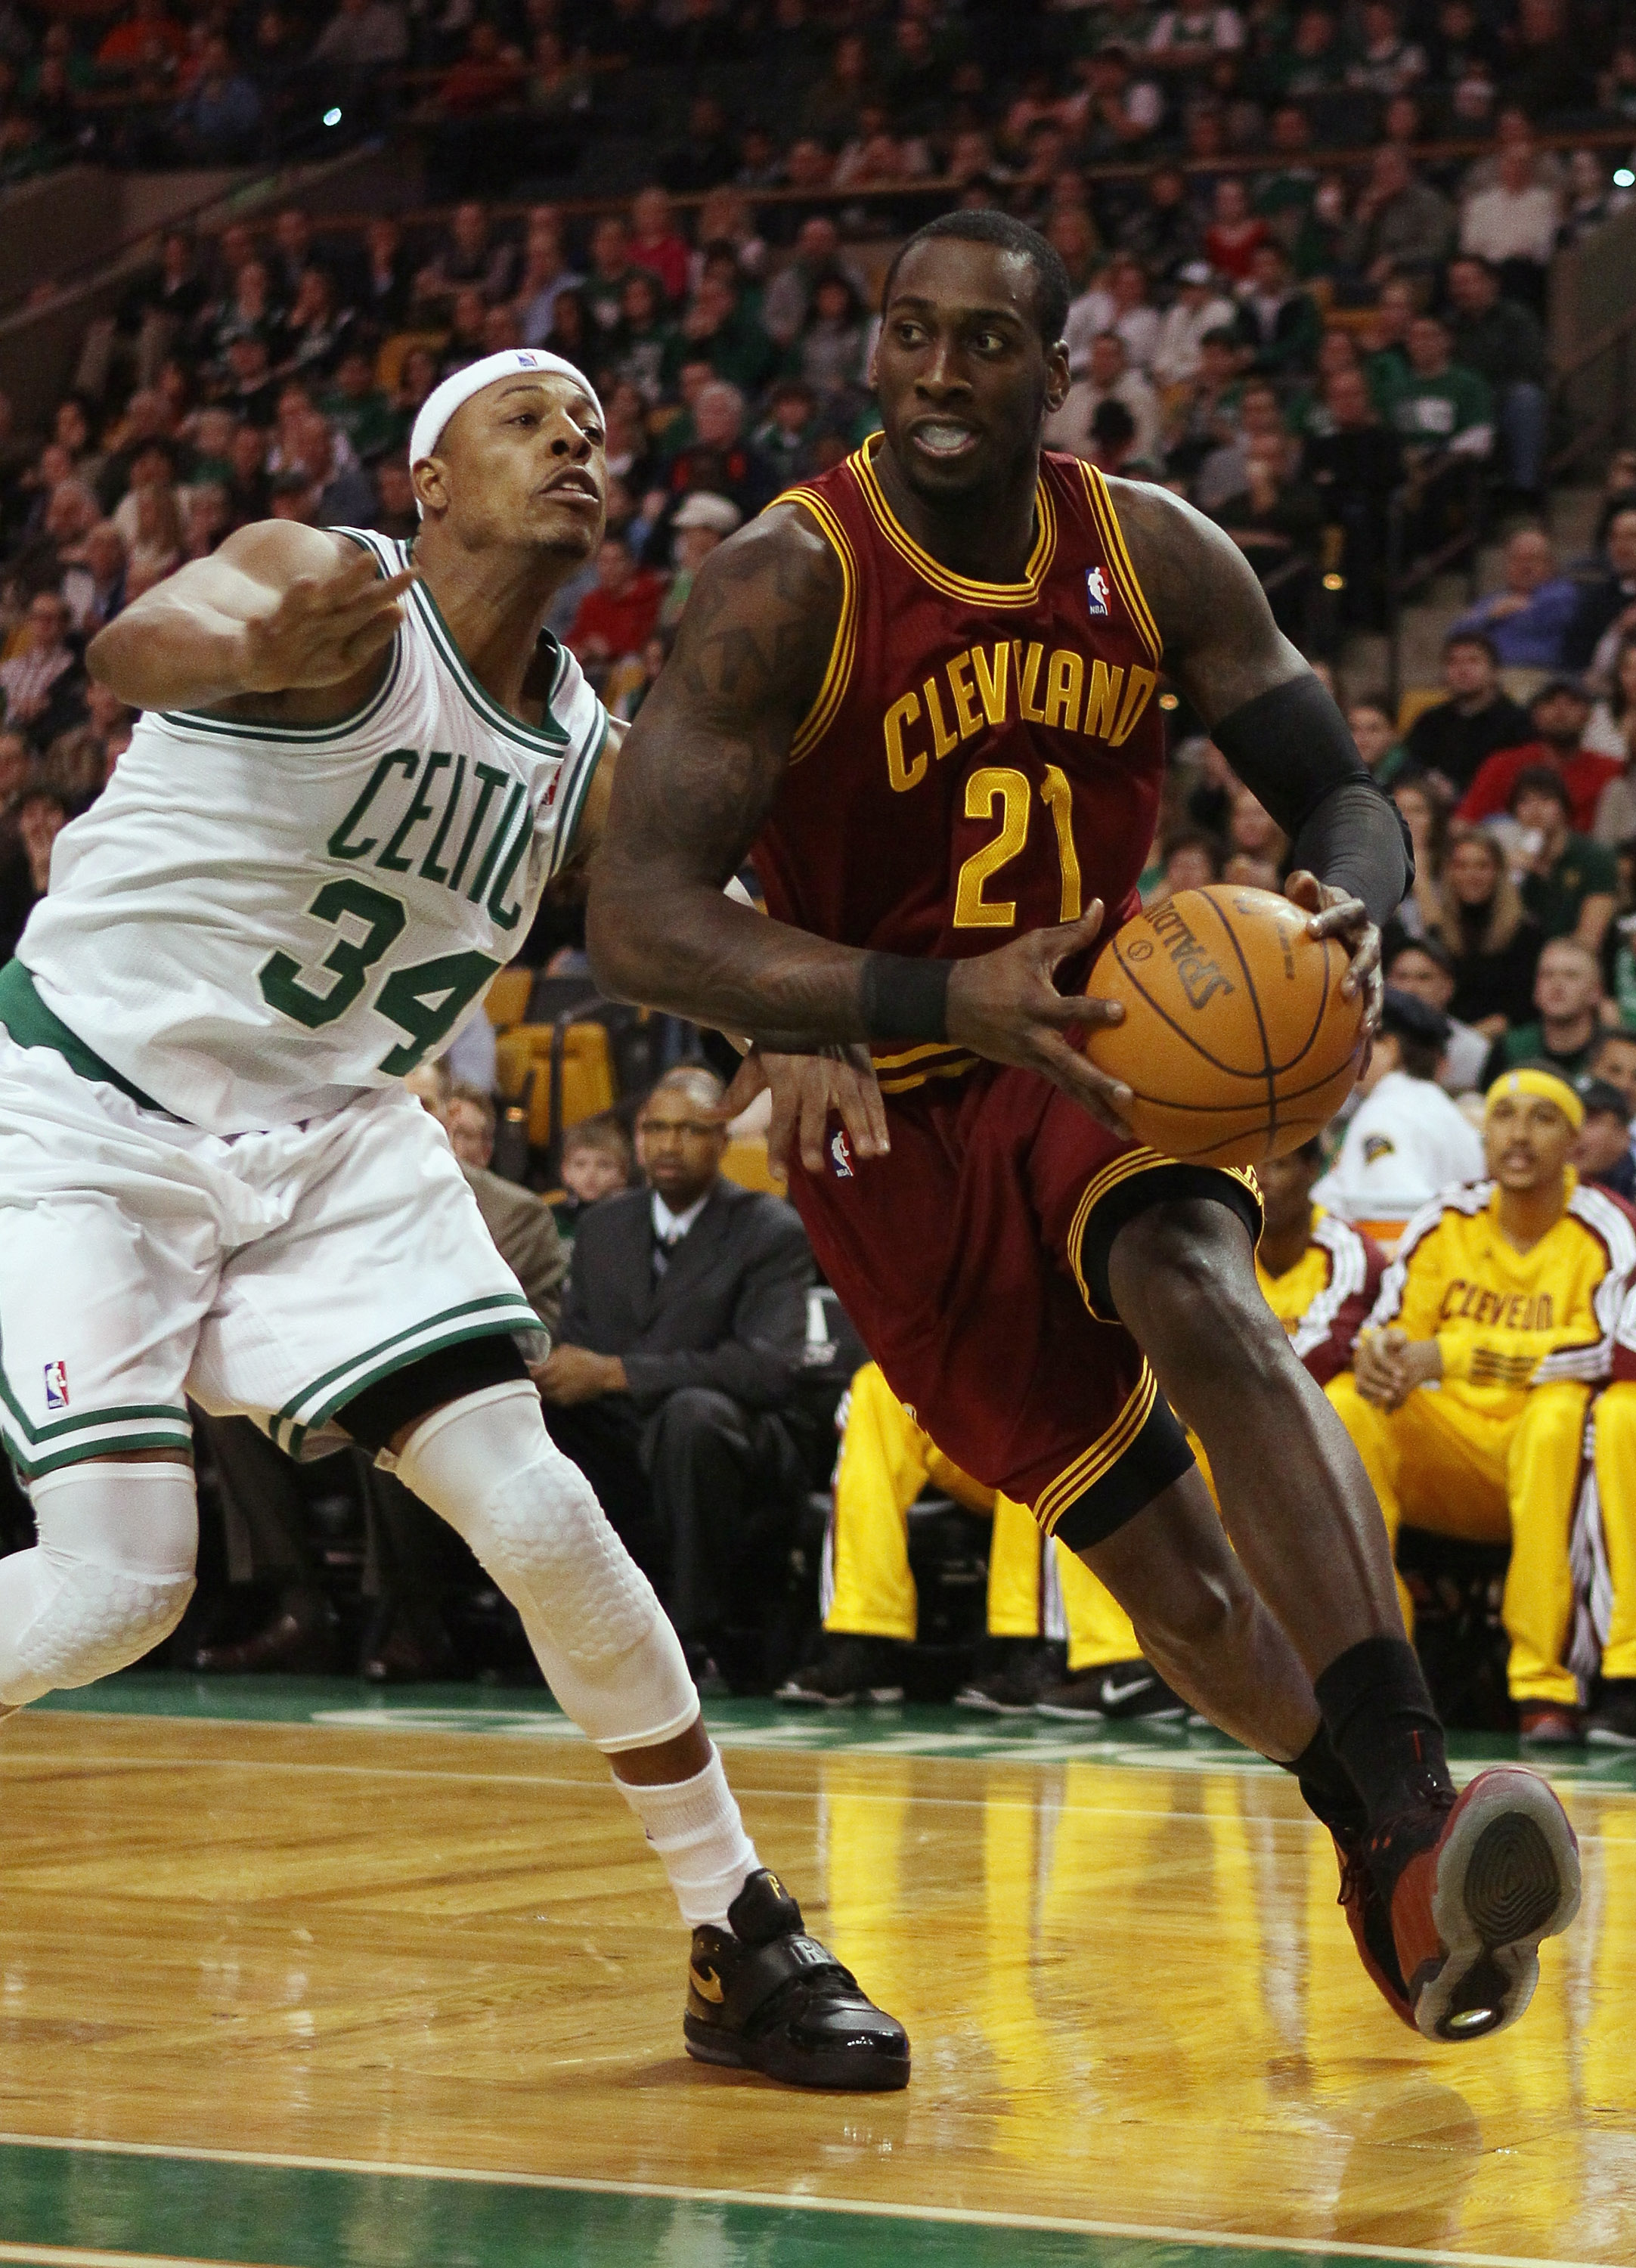 BOSTON, MA - JANUARY 25:  J.J. Hickson #21 of the of the Cleveland Cavaliers heads for the net as Paul Pierce #34 of the Boston Celtics defends on January 25, 2011 at the TD Garden in Boston, Massachusetts.   NOTE TO USER: User expressly acknowledges and